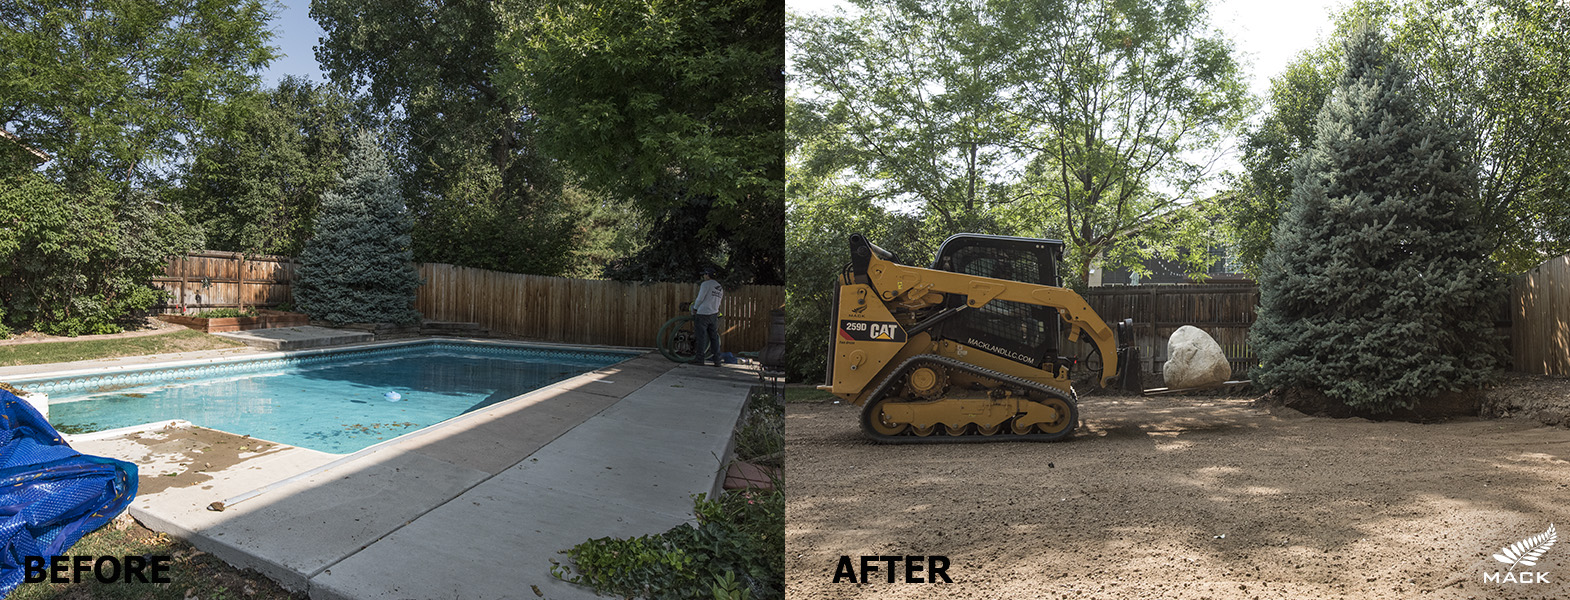 Mack Land LLC - Littleton, CO Pool Removal